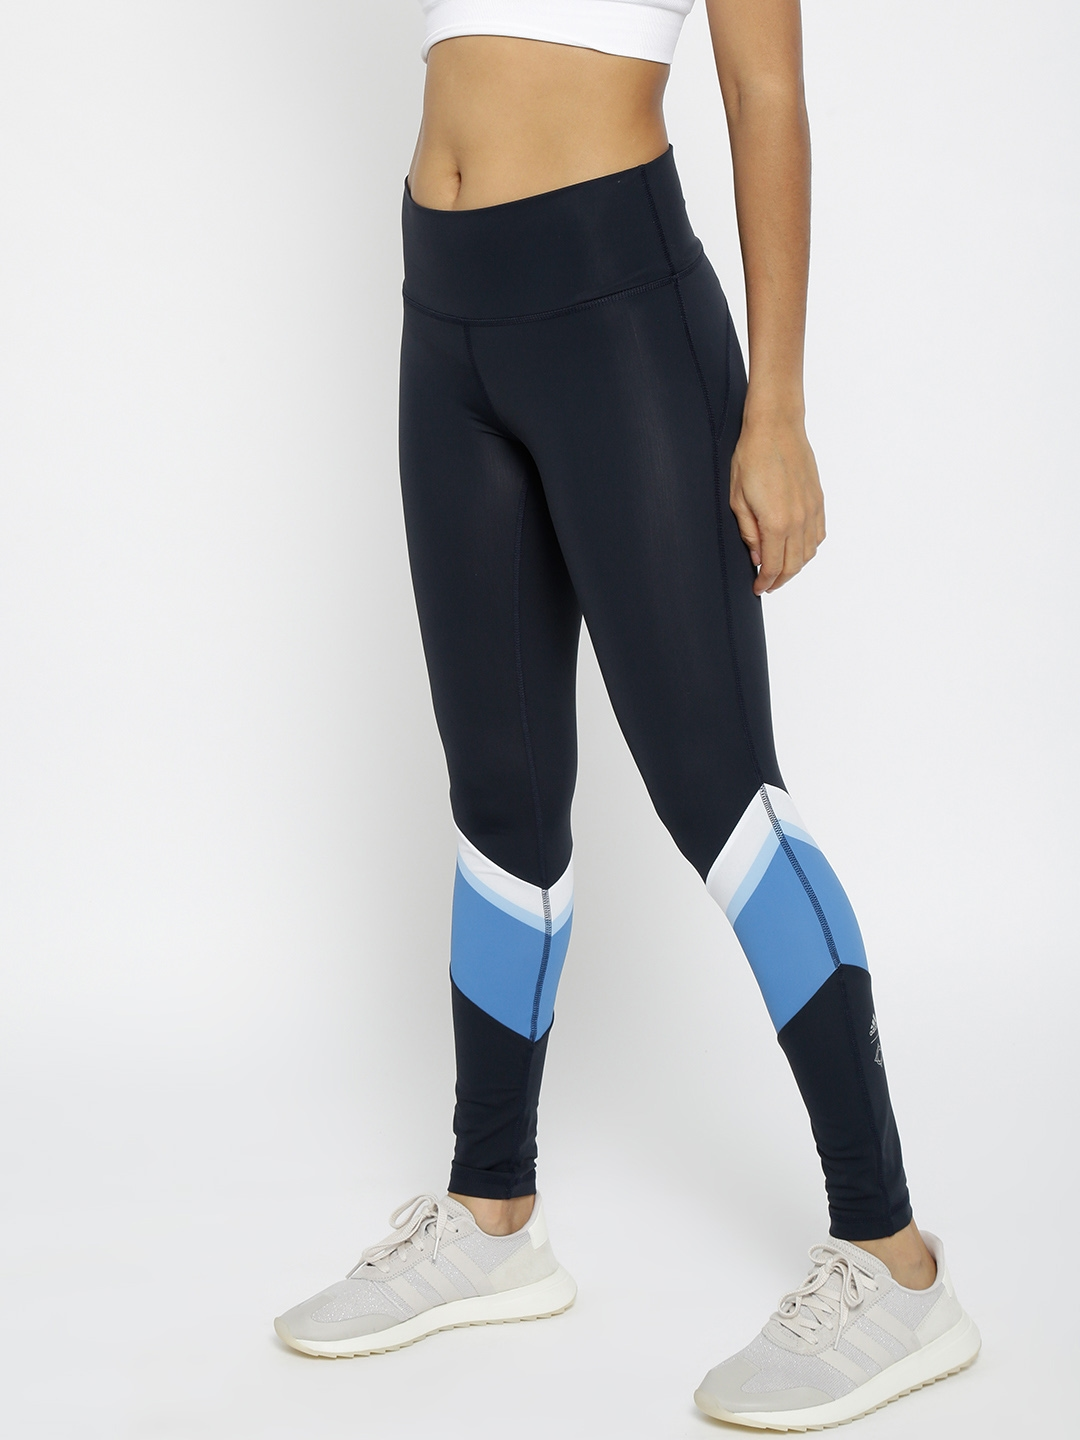 3257d2f8ccf4d Buy ADIDAS Navy Wanderlust P Long Training Tights - Tights for Women ...